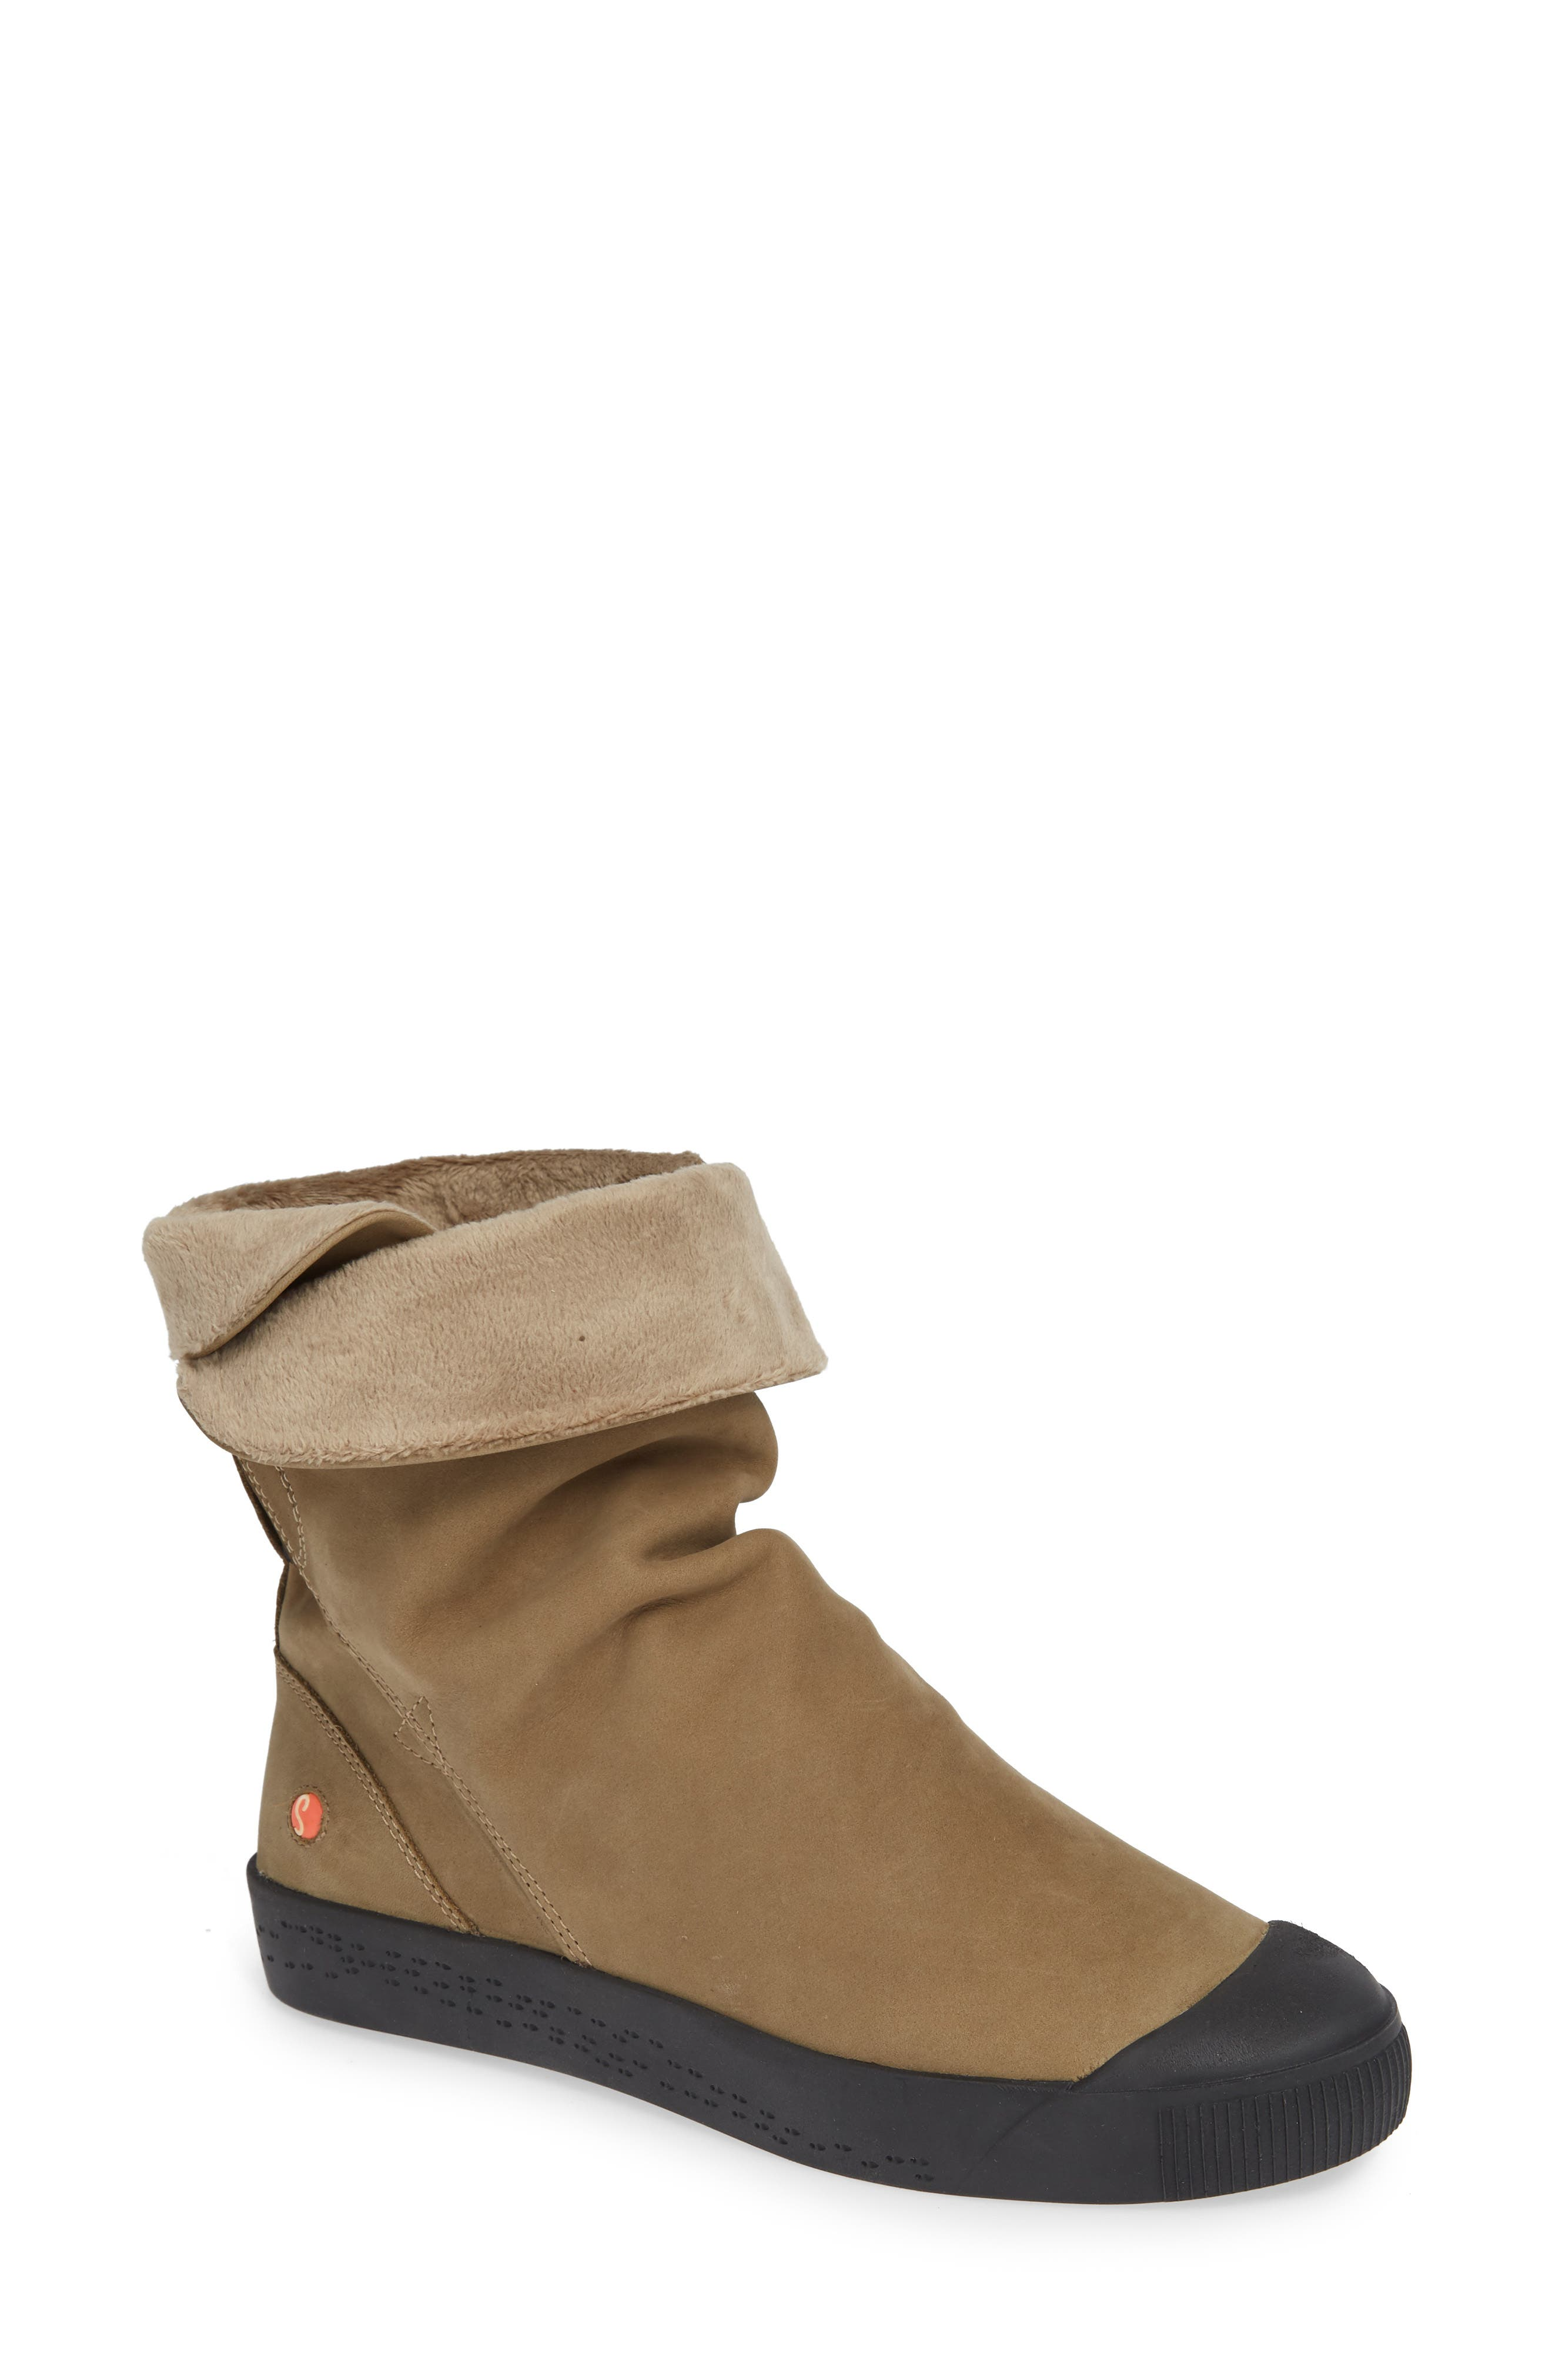 f65858dcd94 Women s Softinos By Fly London Boots